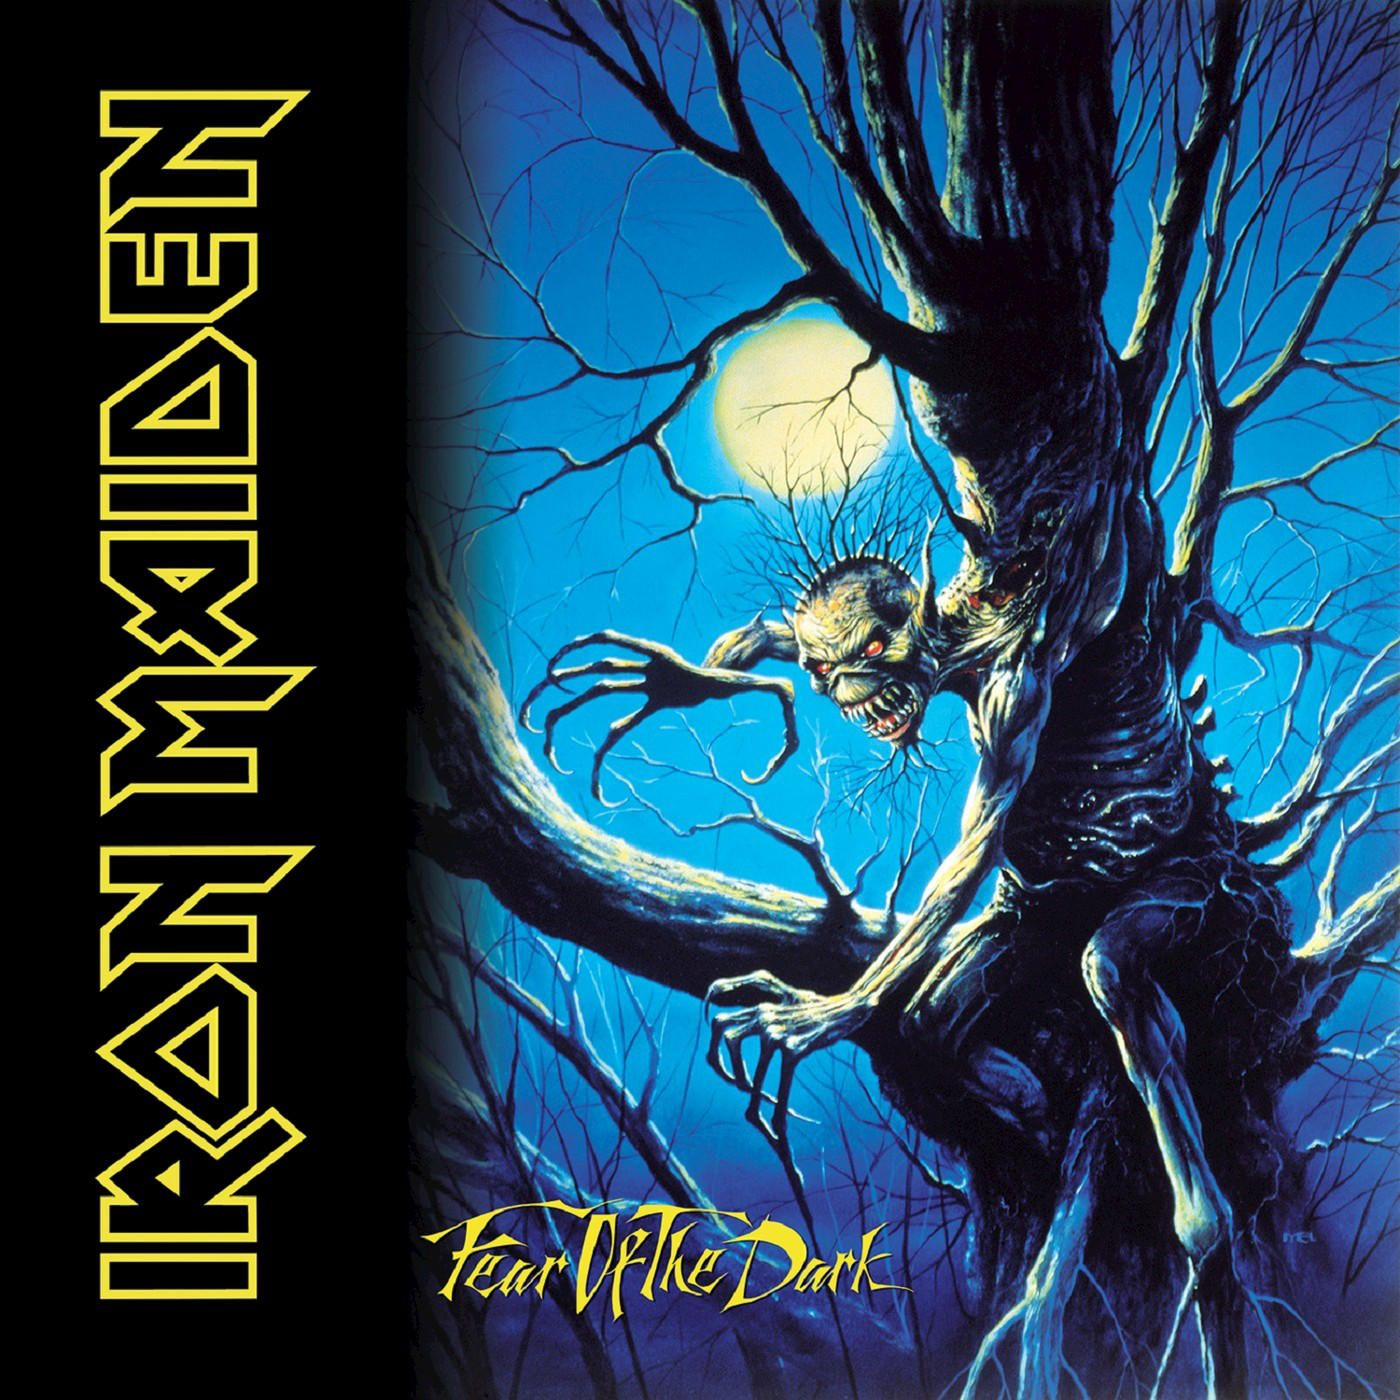 Iron Maiden - Fear Of The Dark album cover